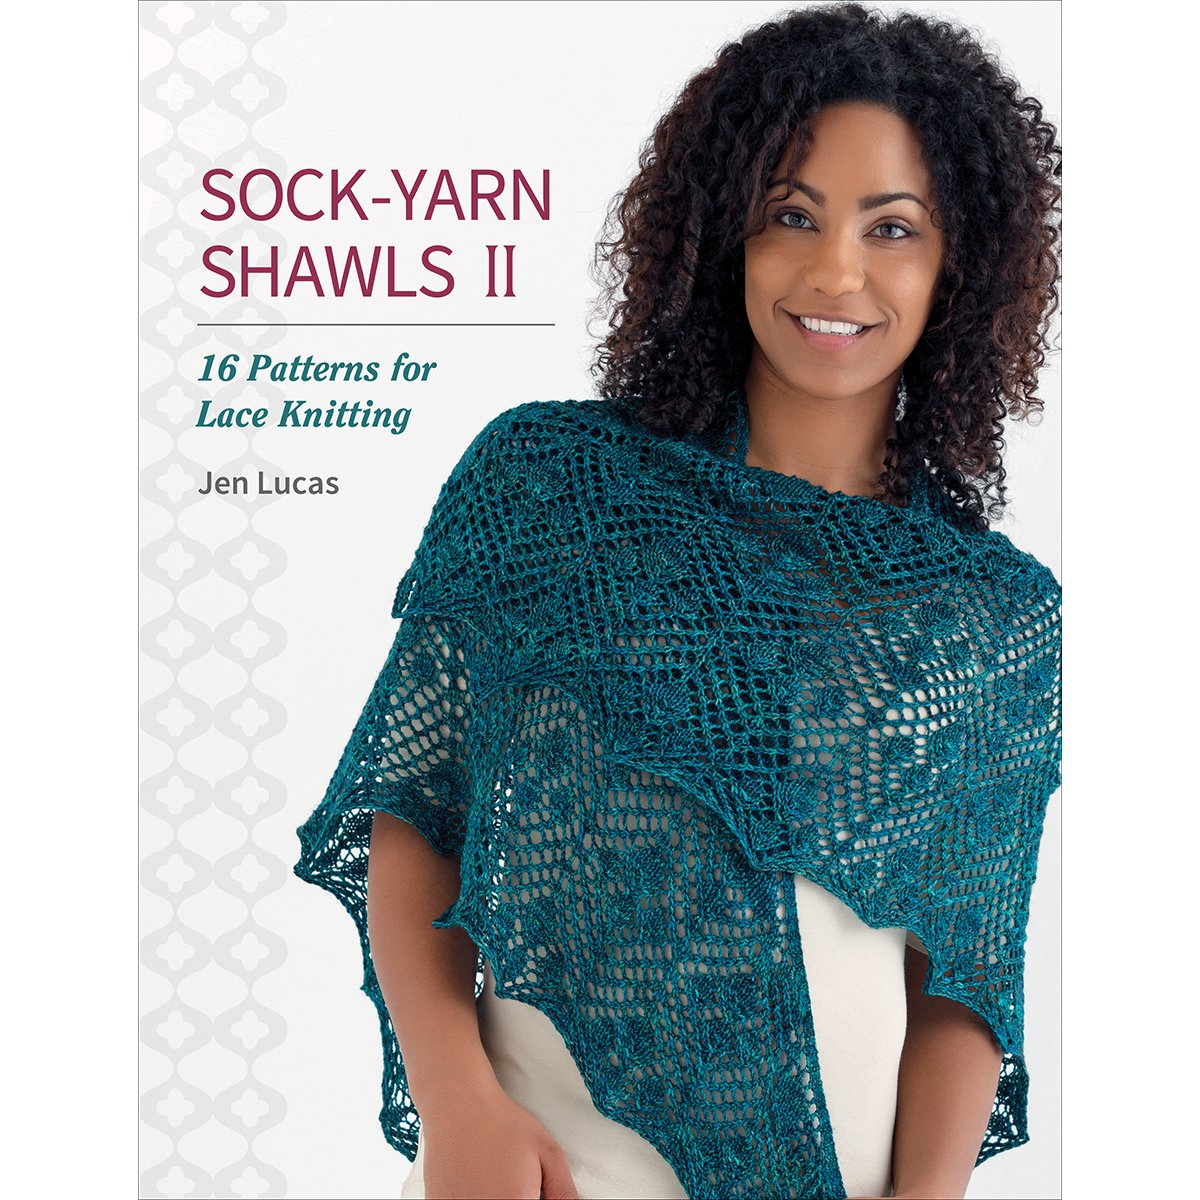 Martingale Sock-Yarn Shawls II Book by Martingale